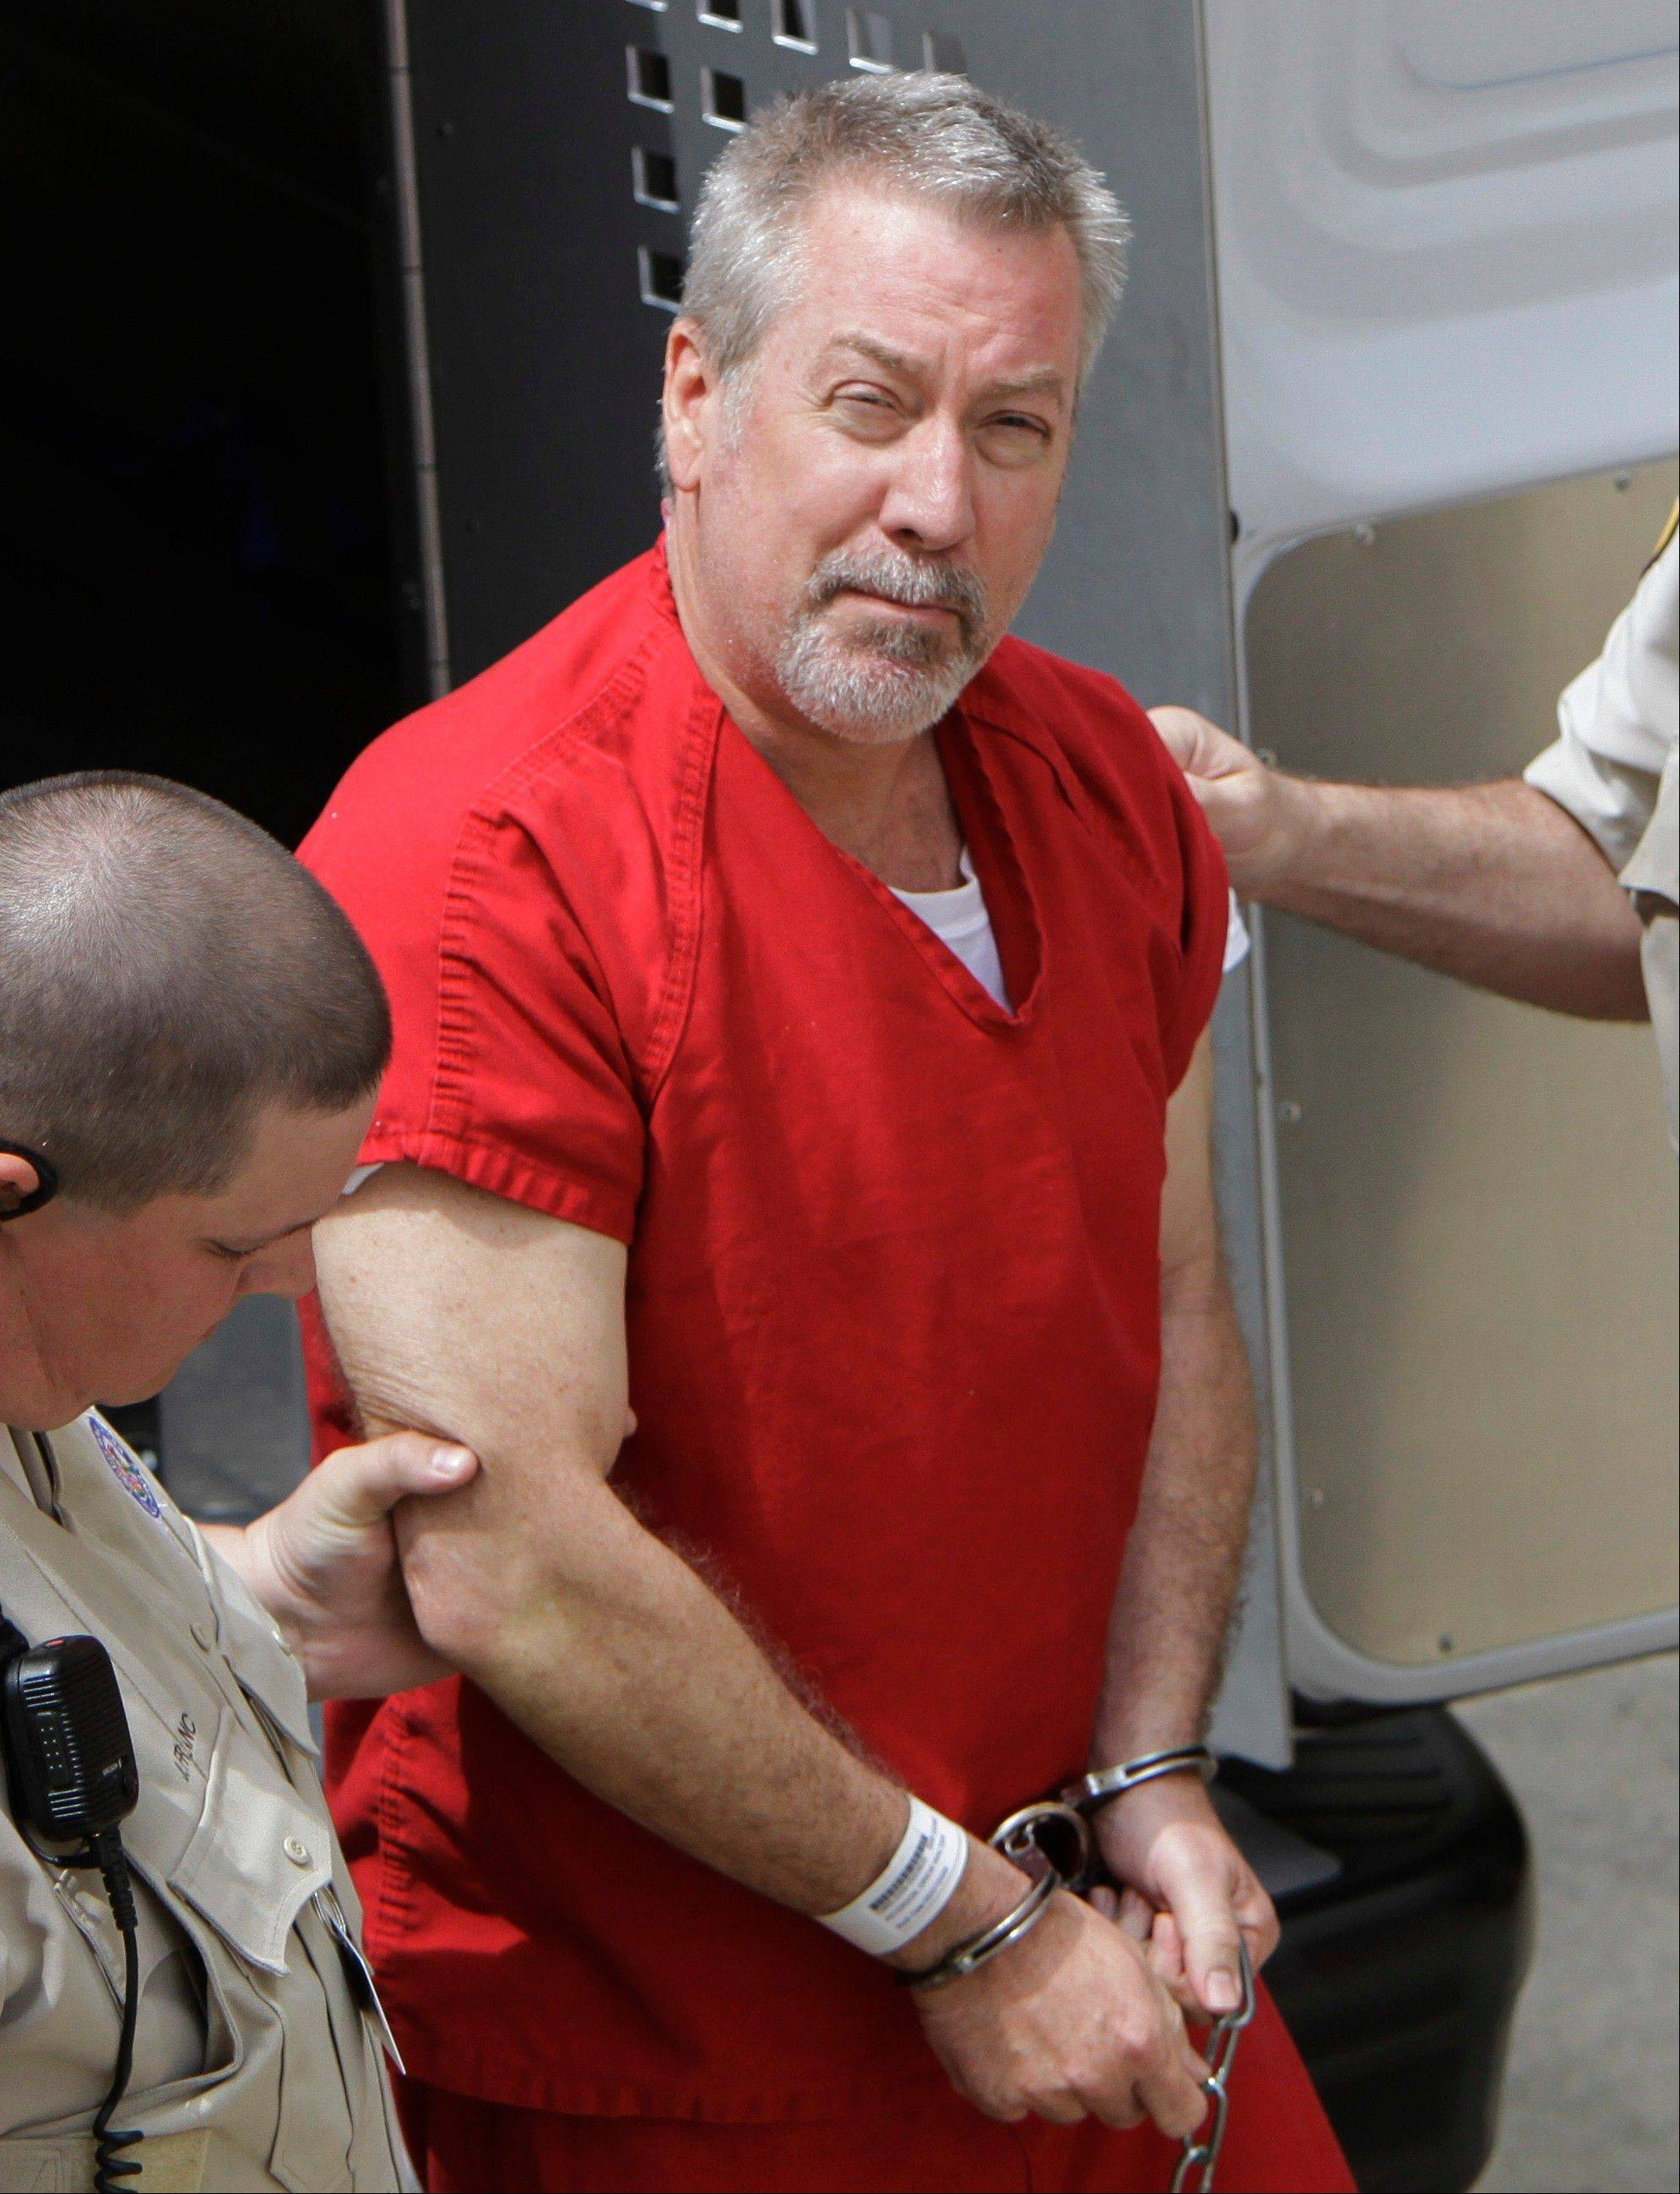 At a pre-trial hearing Wednesday, defense attorneys and prosecutors were making their final pitches on what evidence should or shouldn't be admitted when Drew Peterson's murder trial gets under way. Jury selection is scheduled to begin Monday.